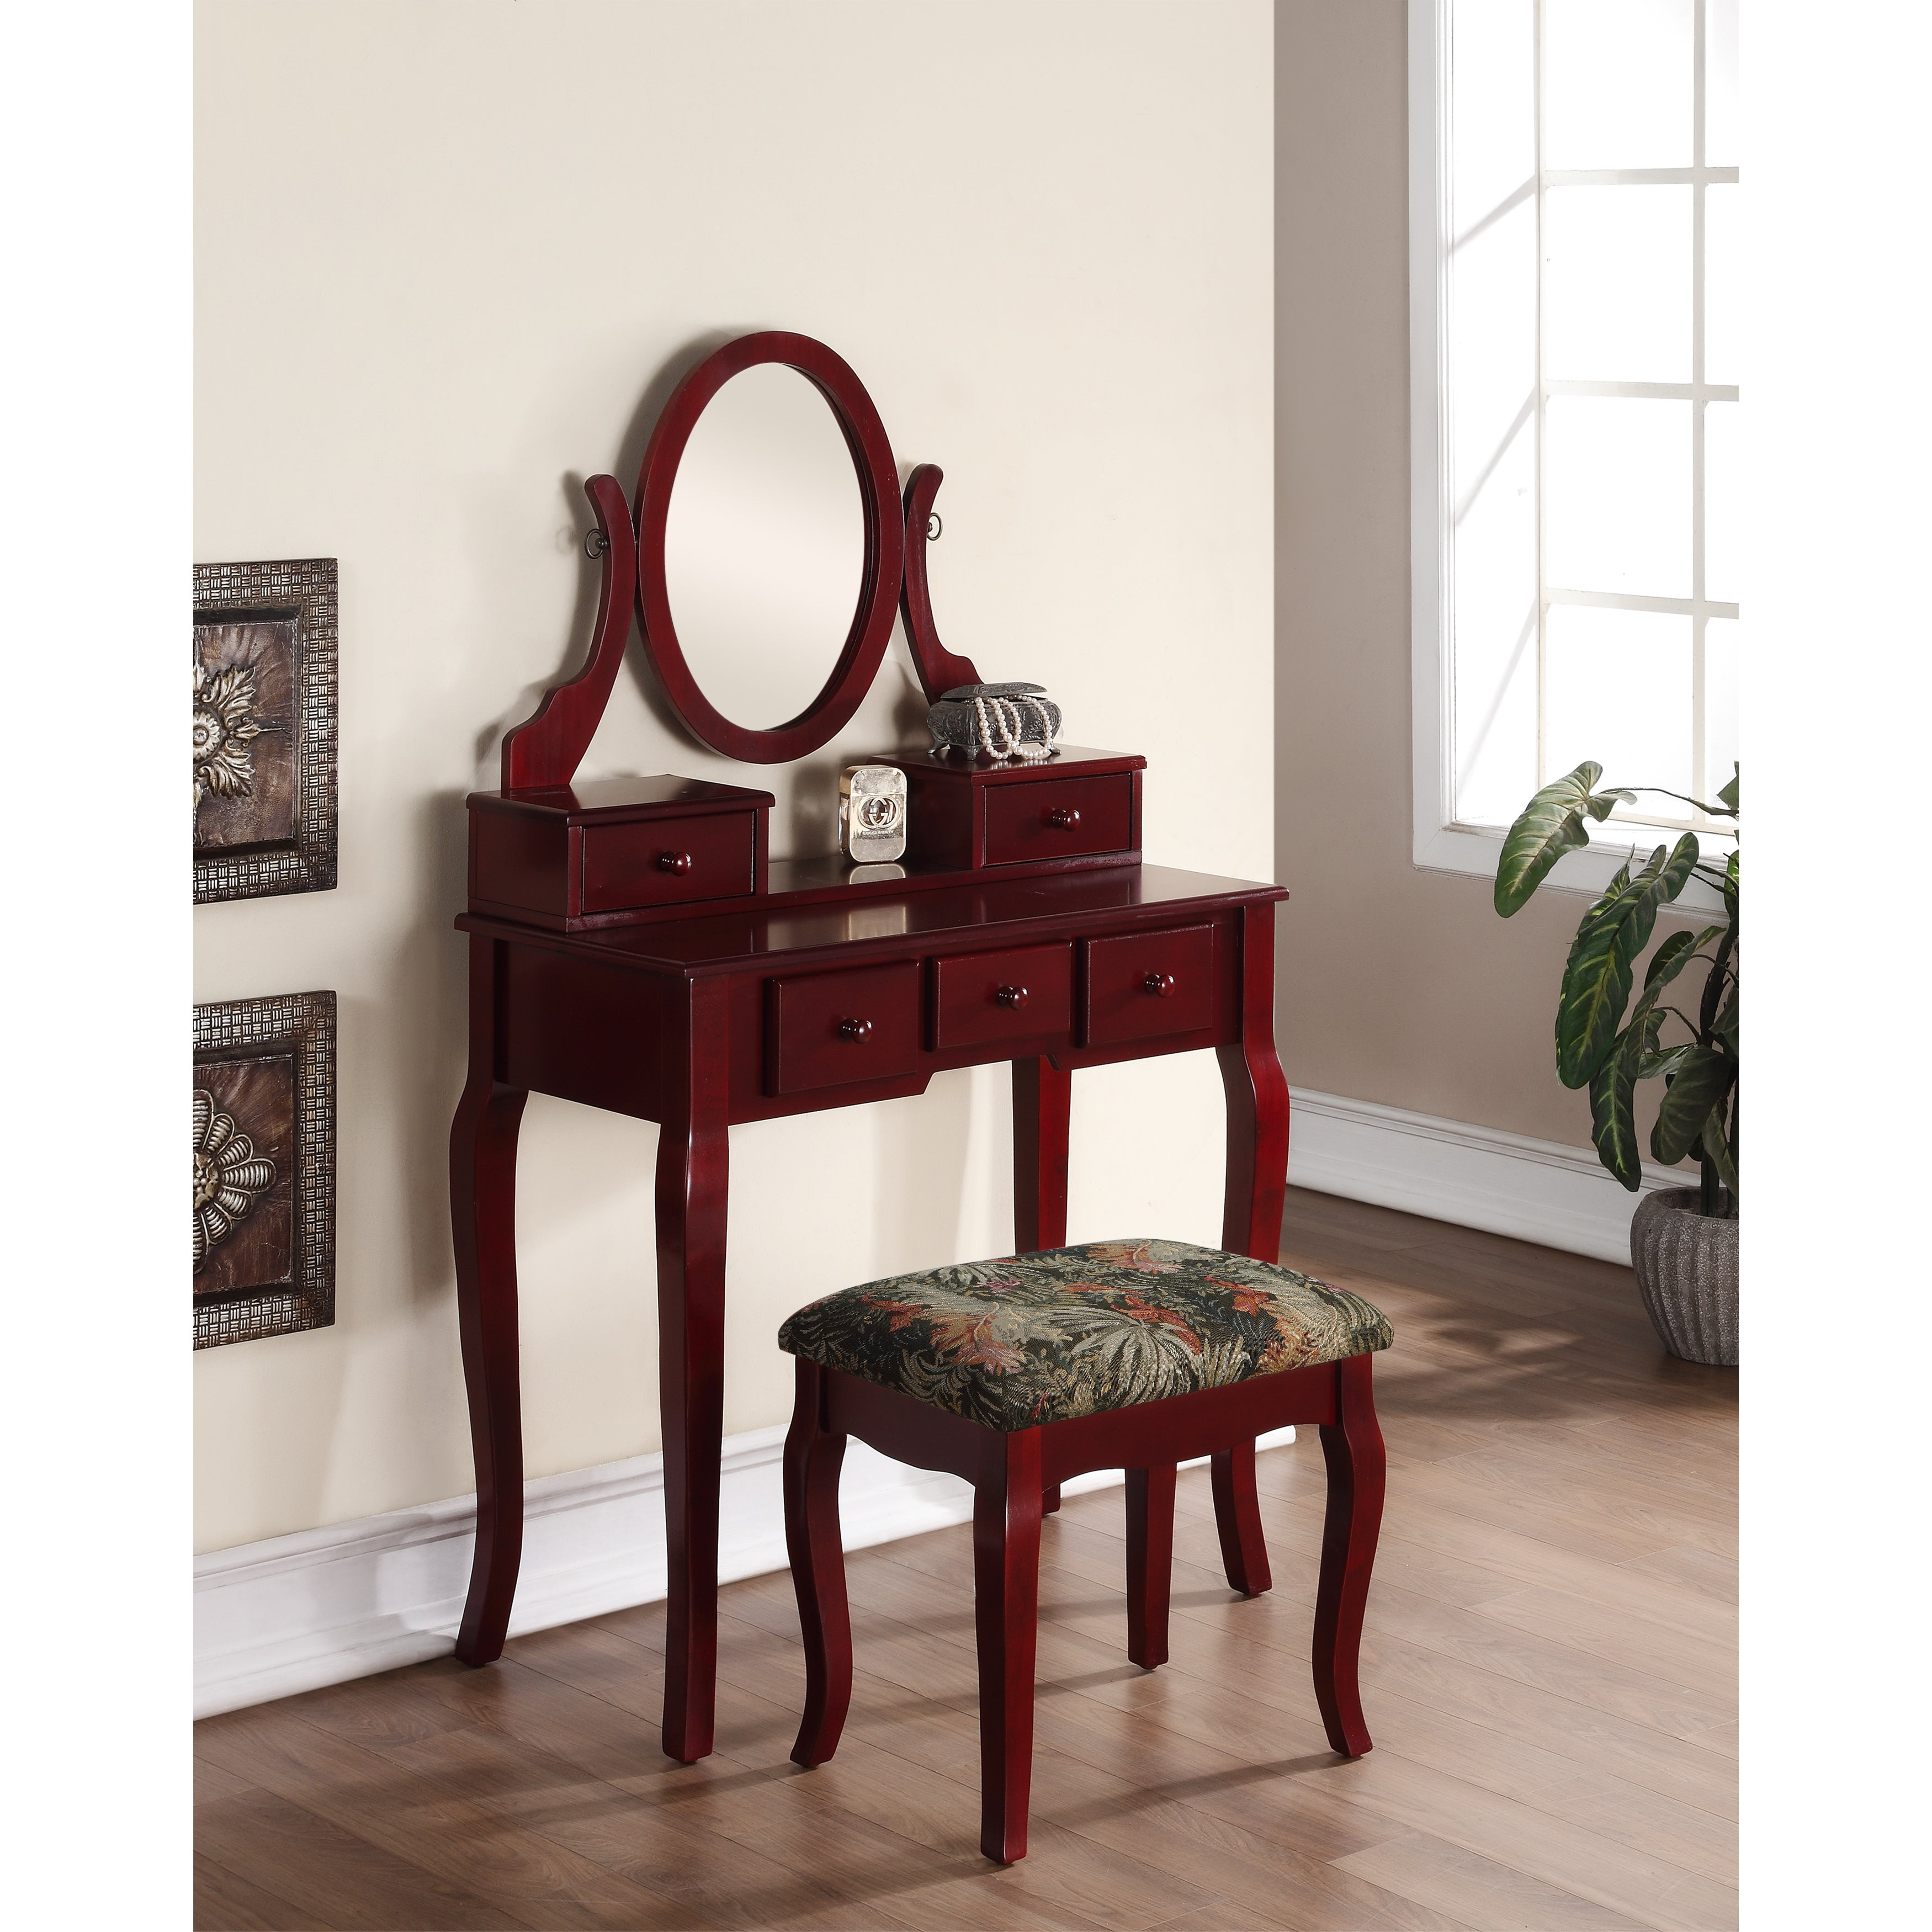 Shop ashley wood cherry makeup vanity table and stool set free shipping today overstock com 20460924